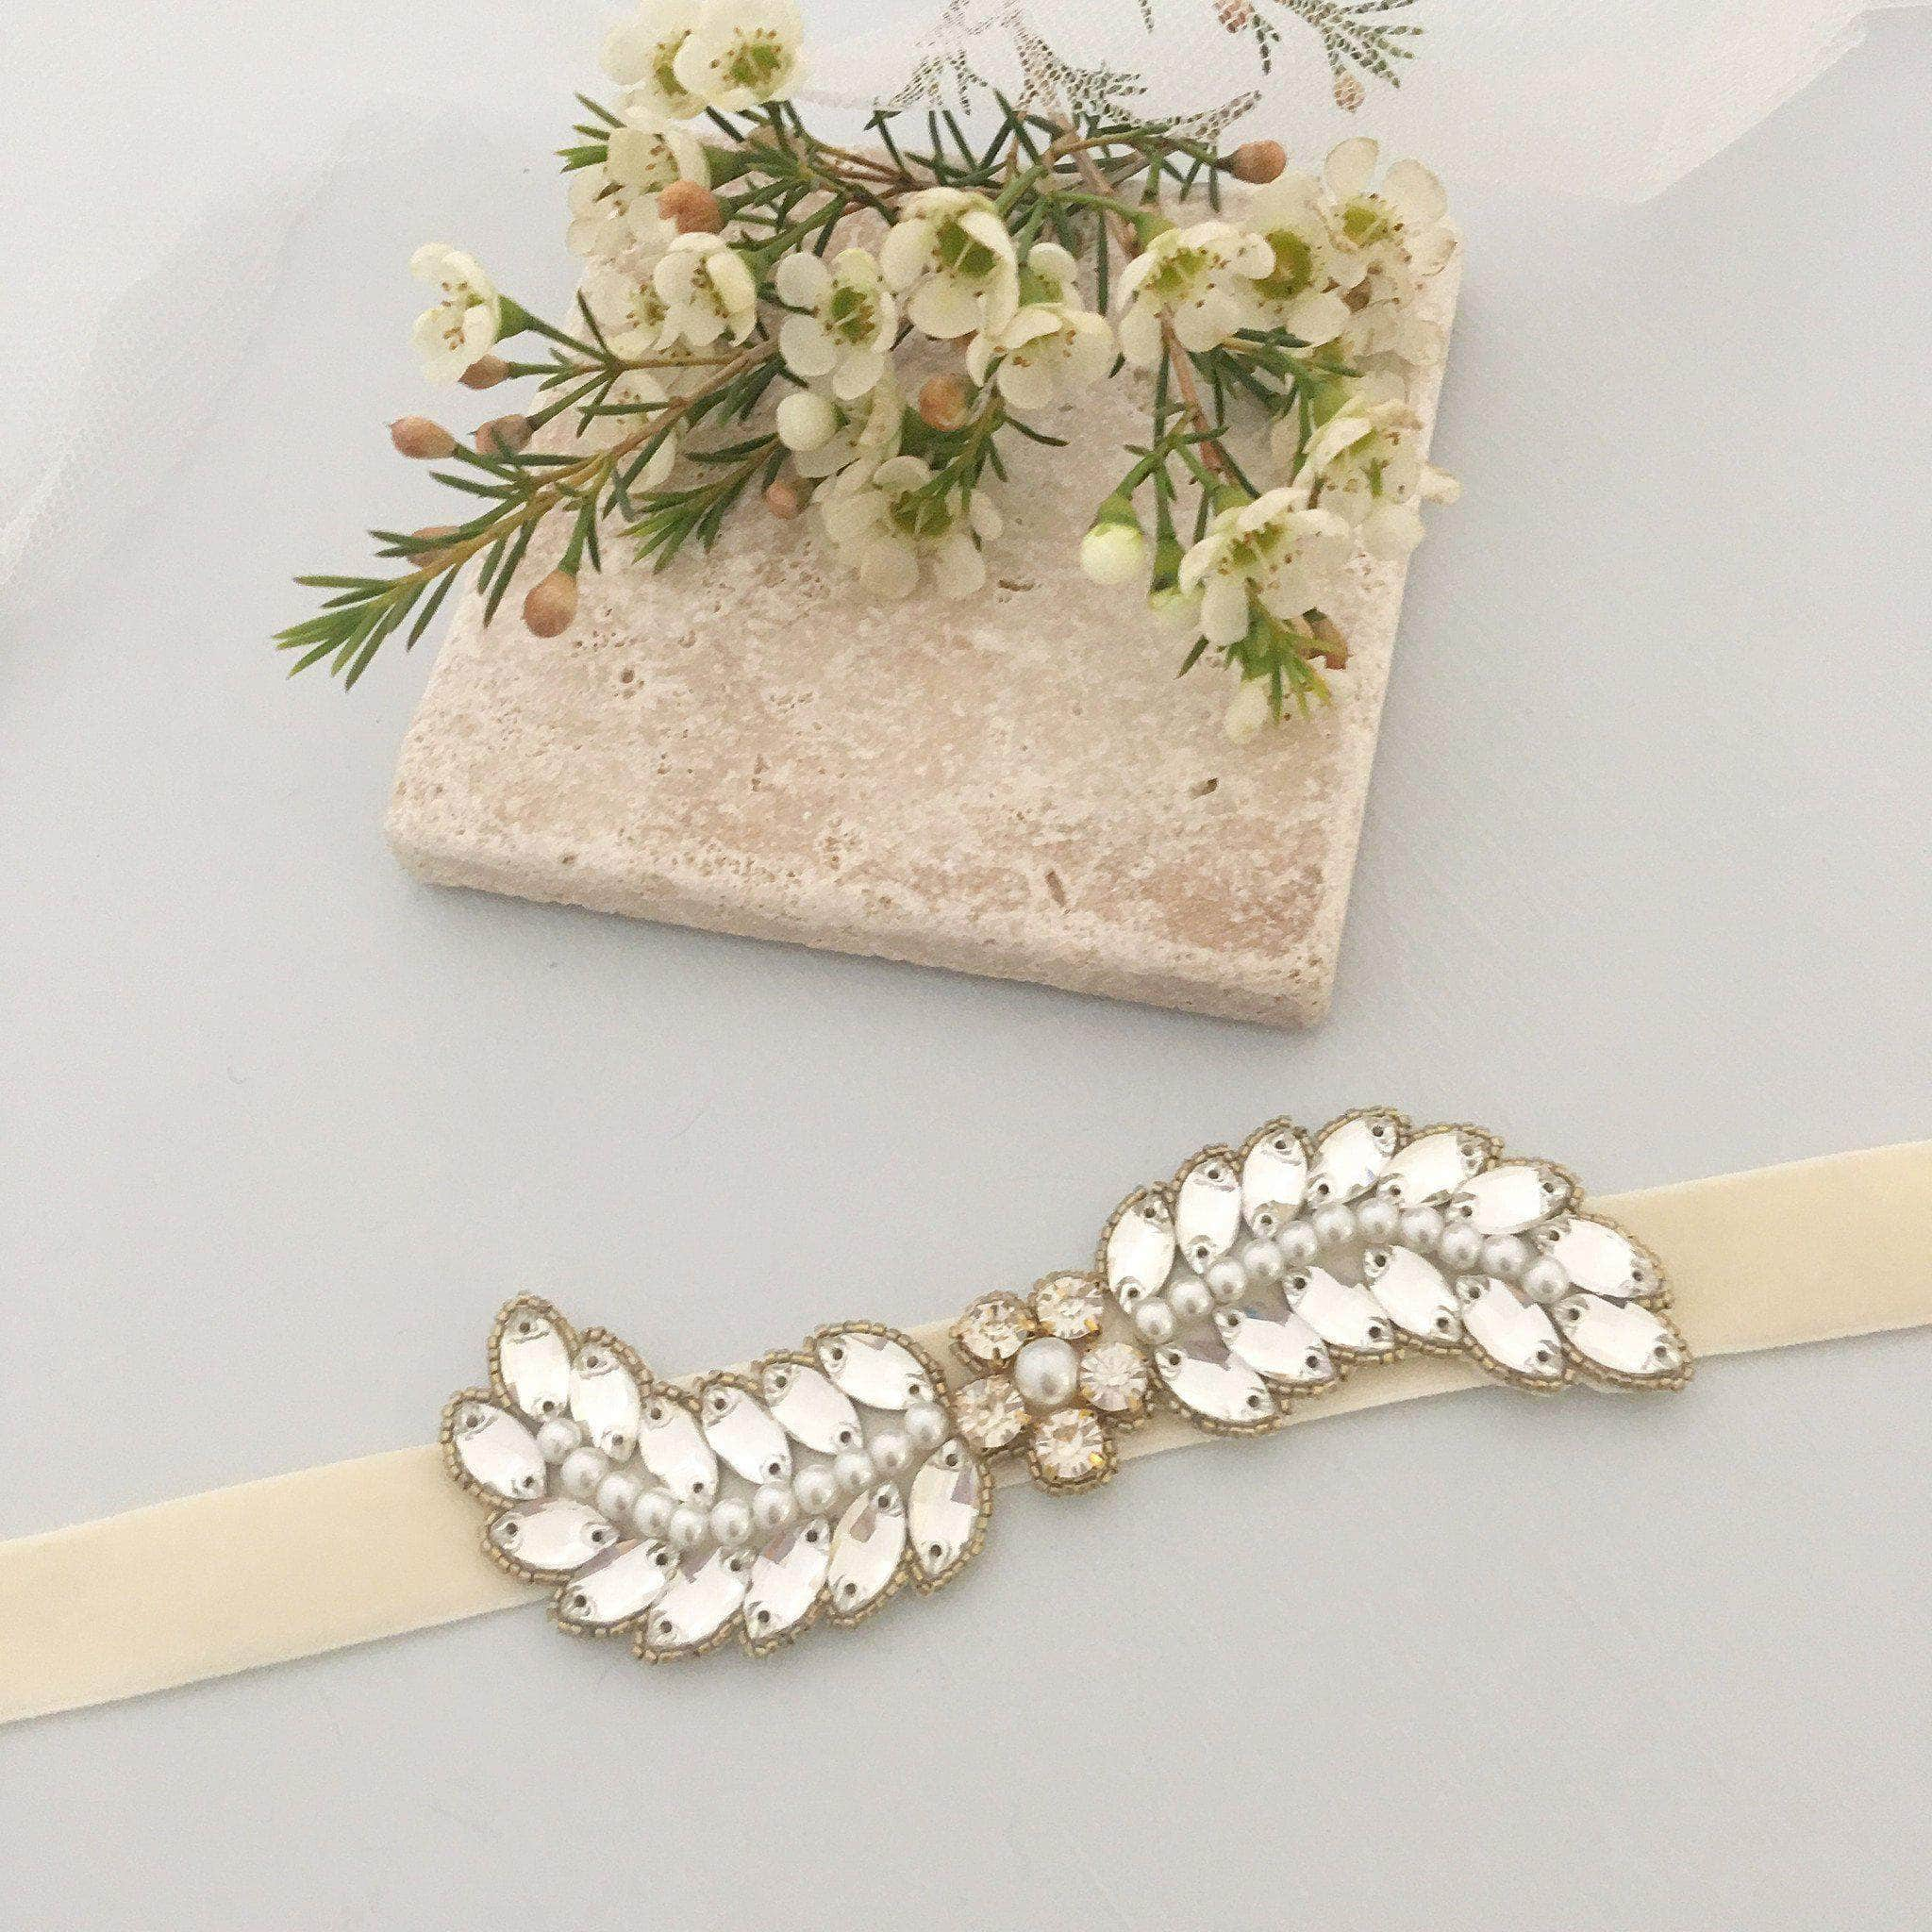 Gold flower wedding belt - 'Caris' | Britten Weddings